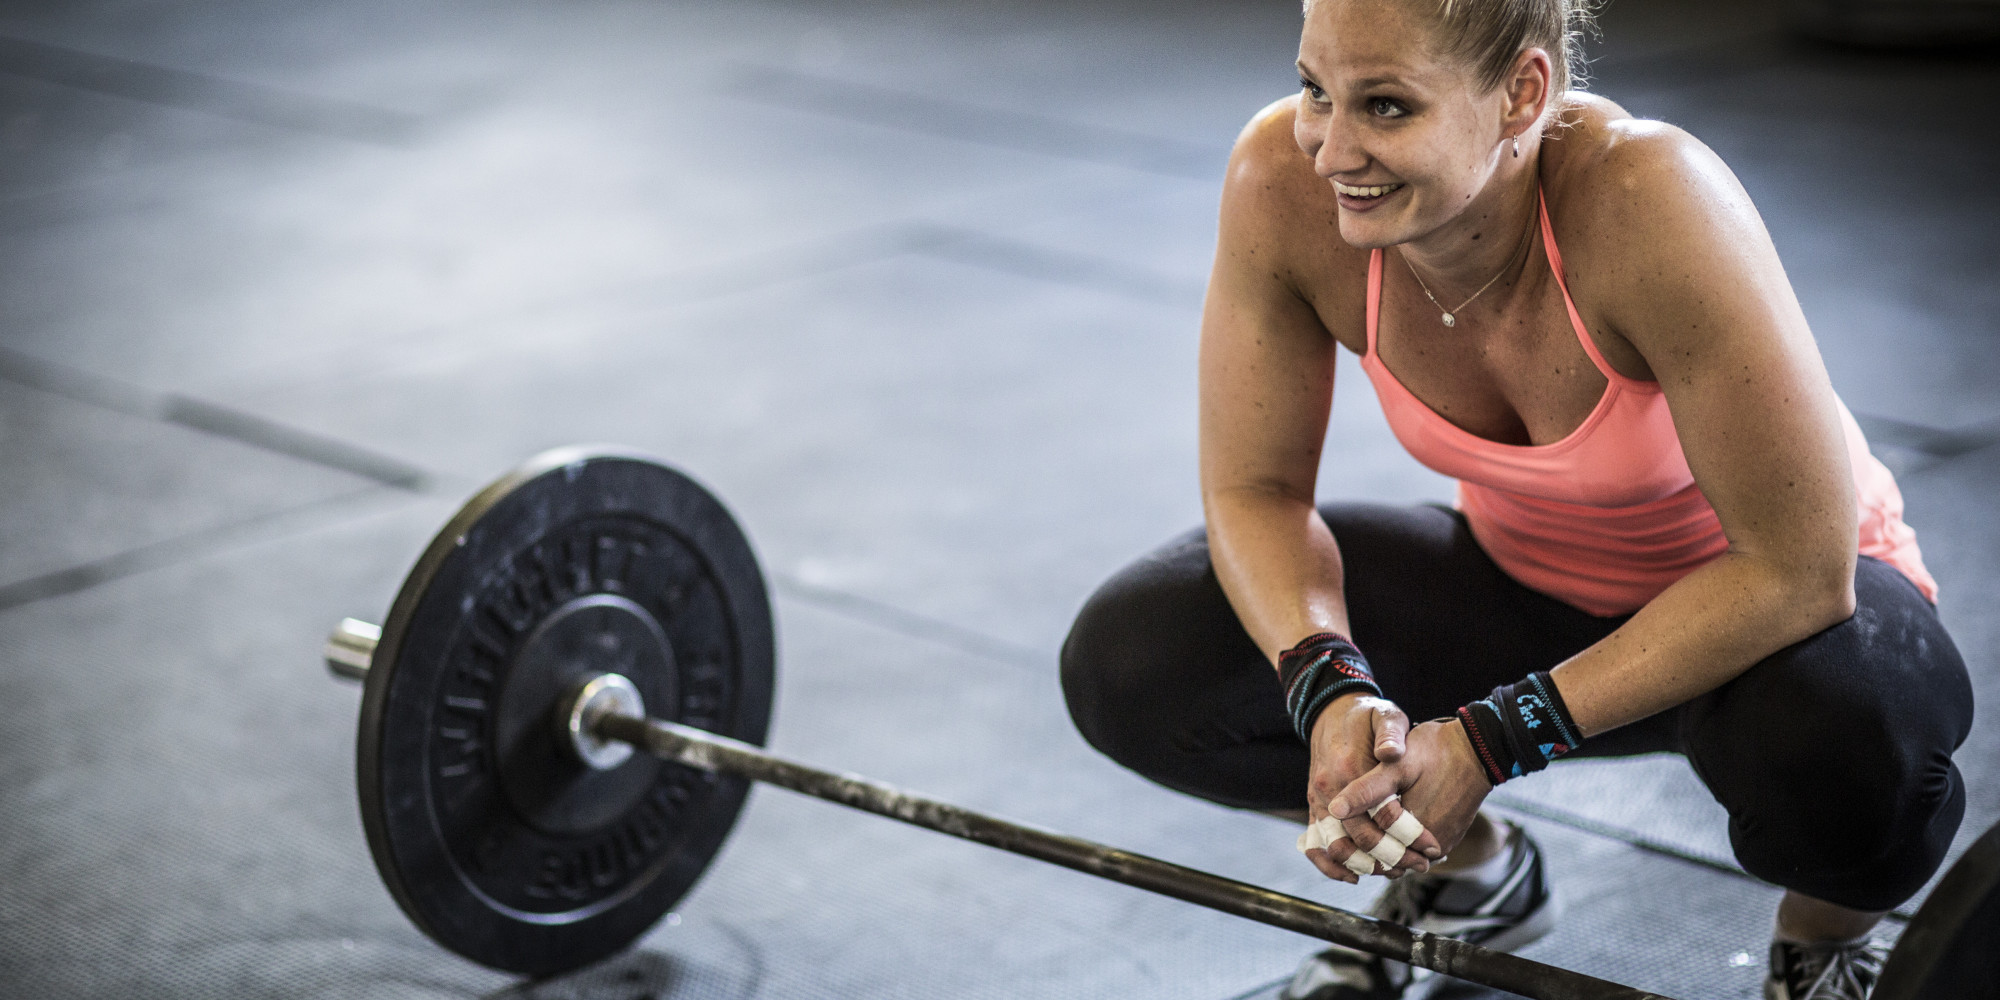 Fact or fiction - busting the myths around strength ...